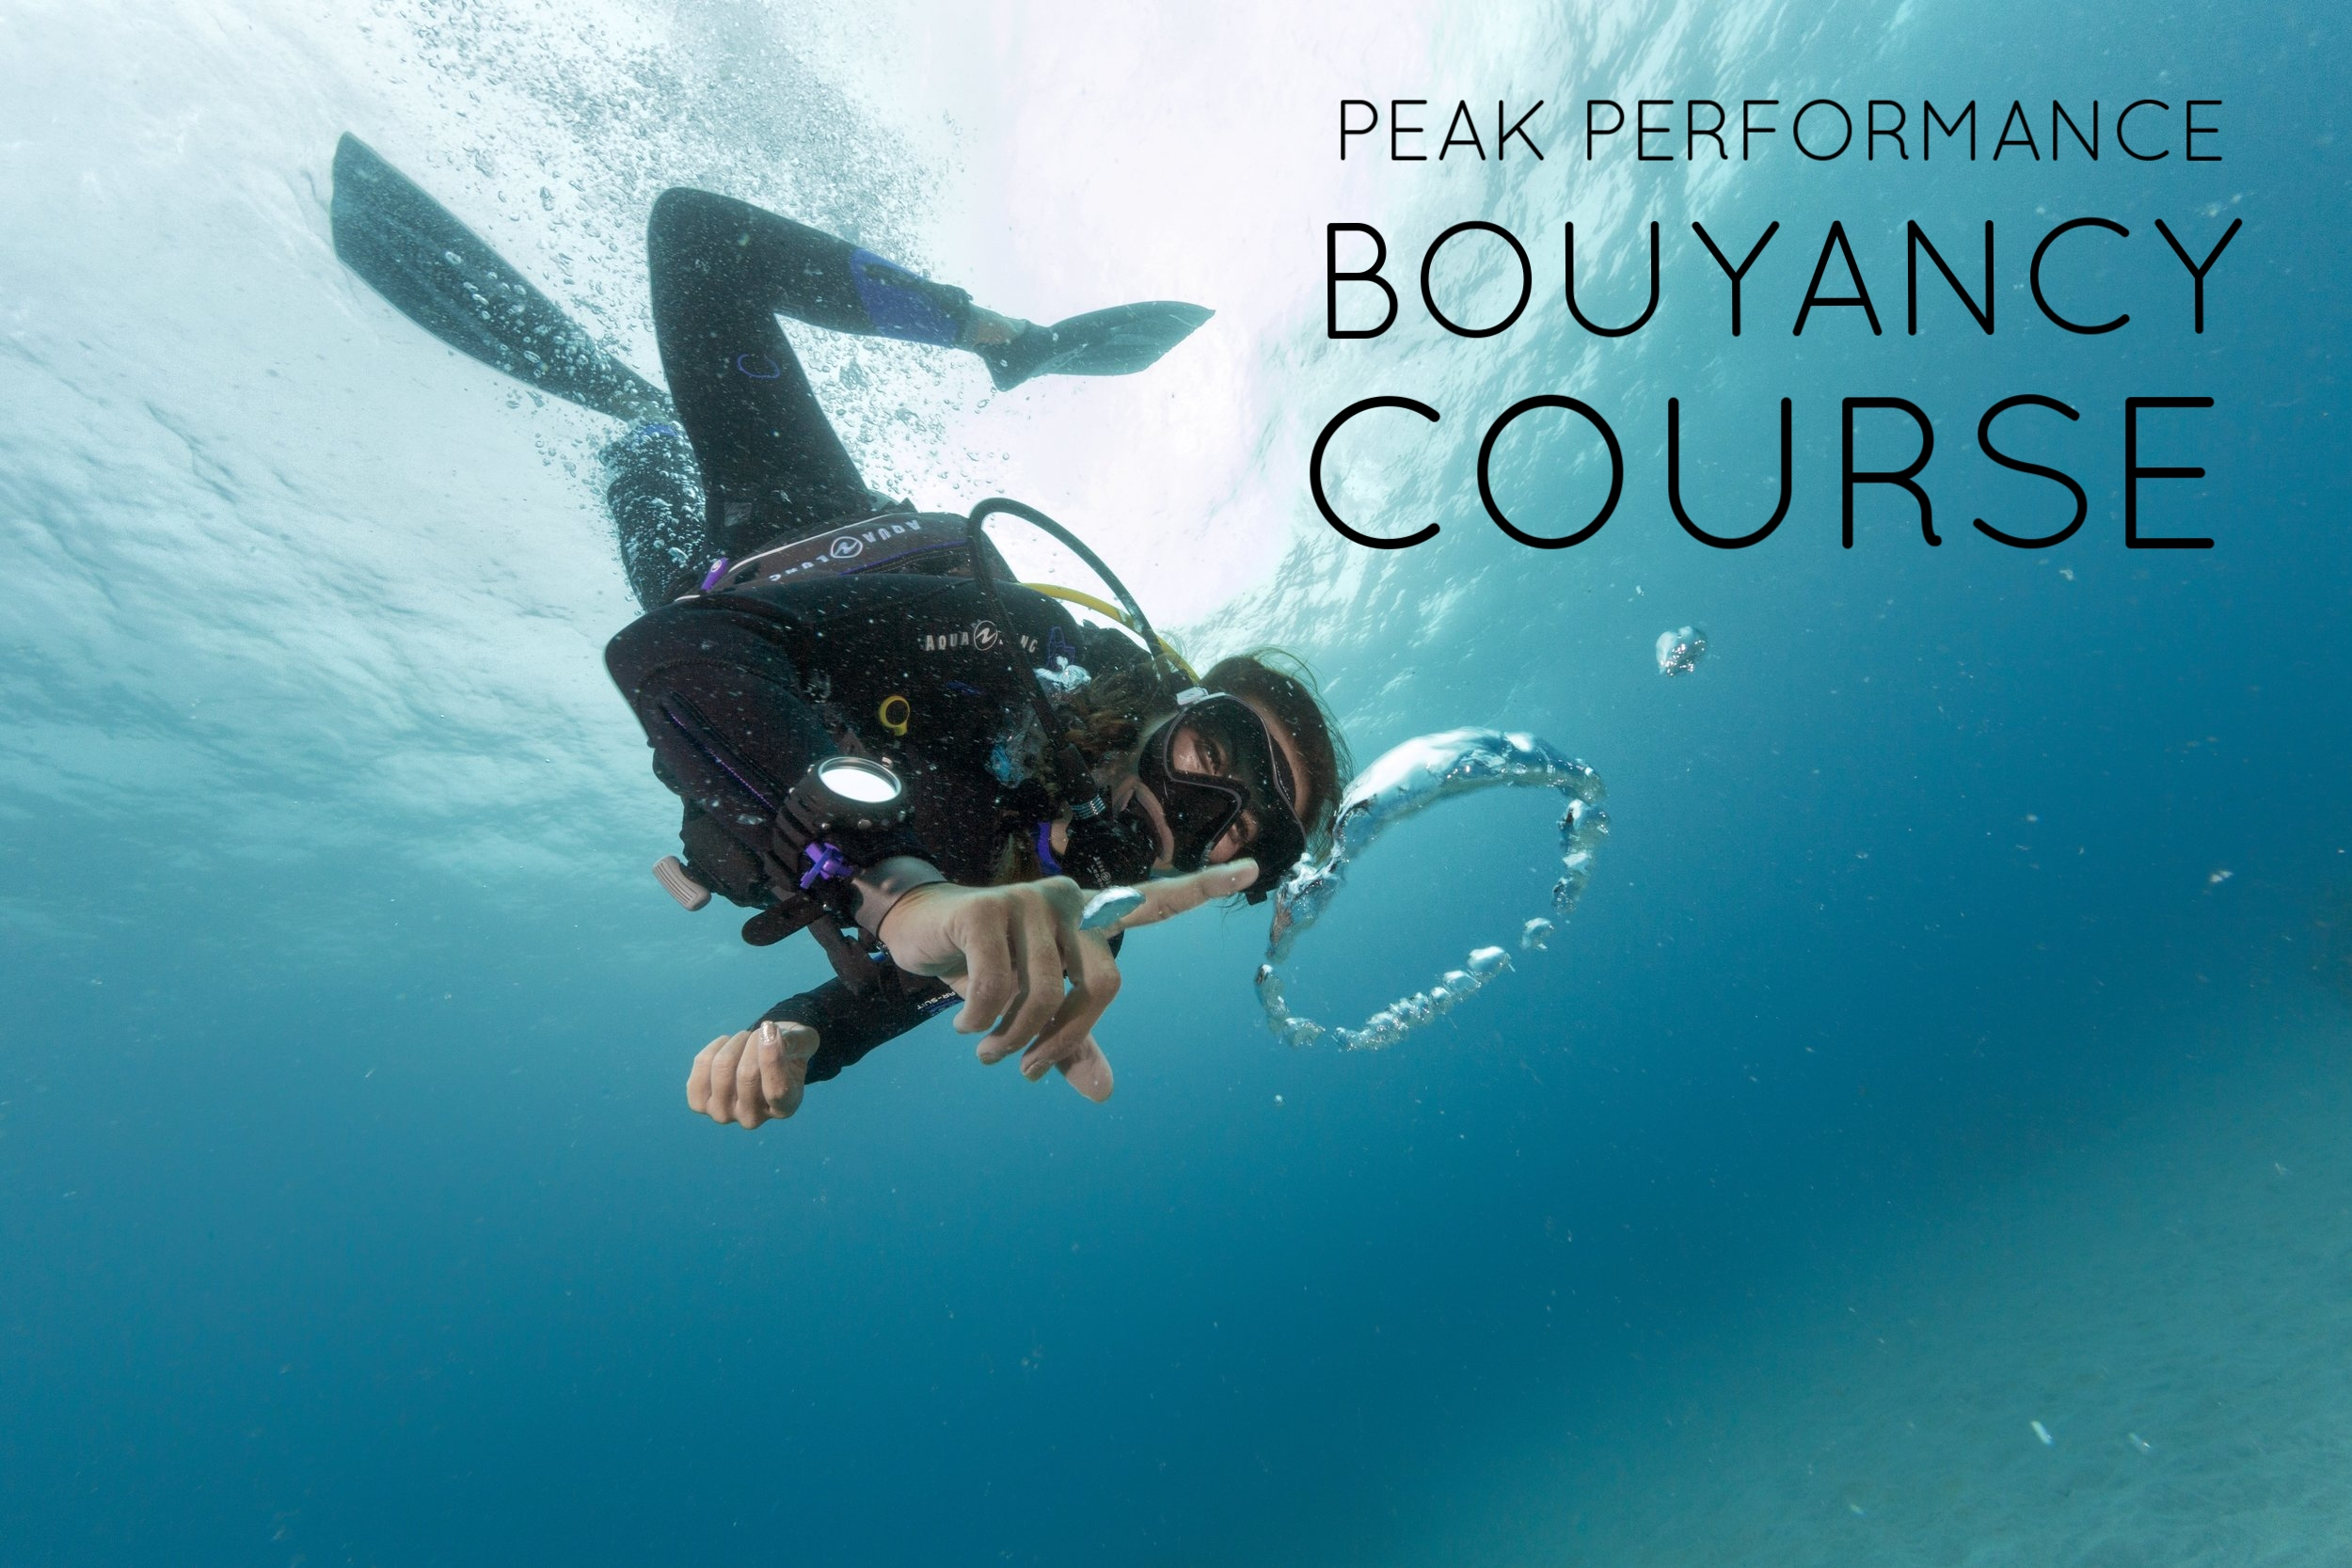 Good Bouyancy is the key to mastering Scuba Diving. This course teaches you new techniques to improve and practice your bouyancy in the water.